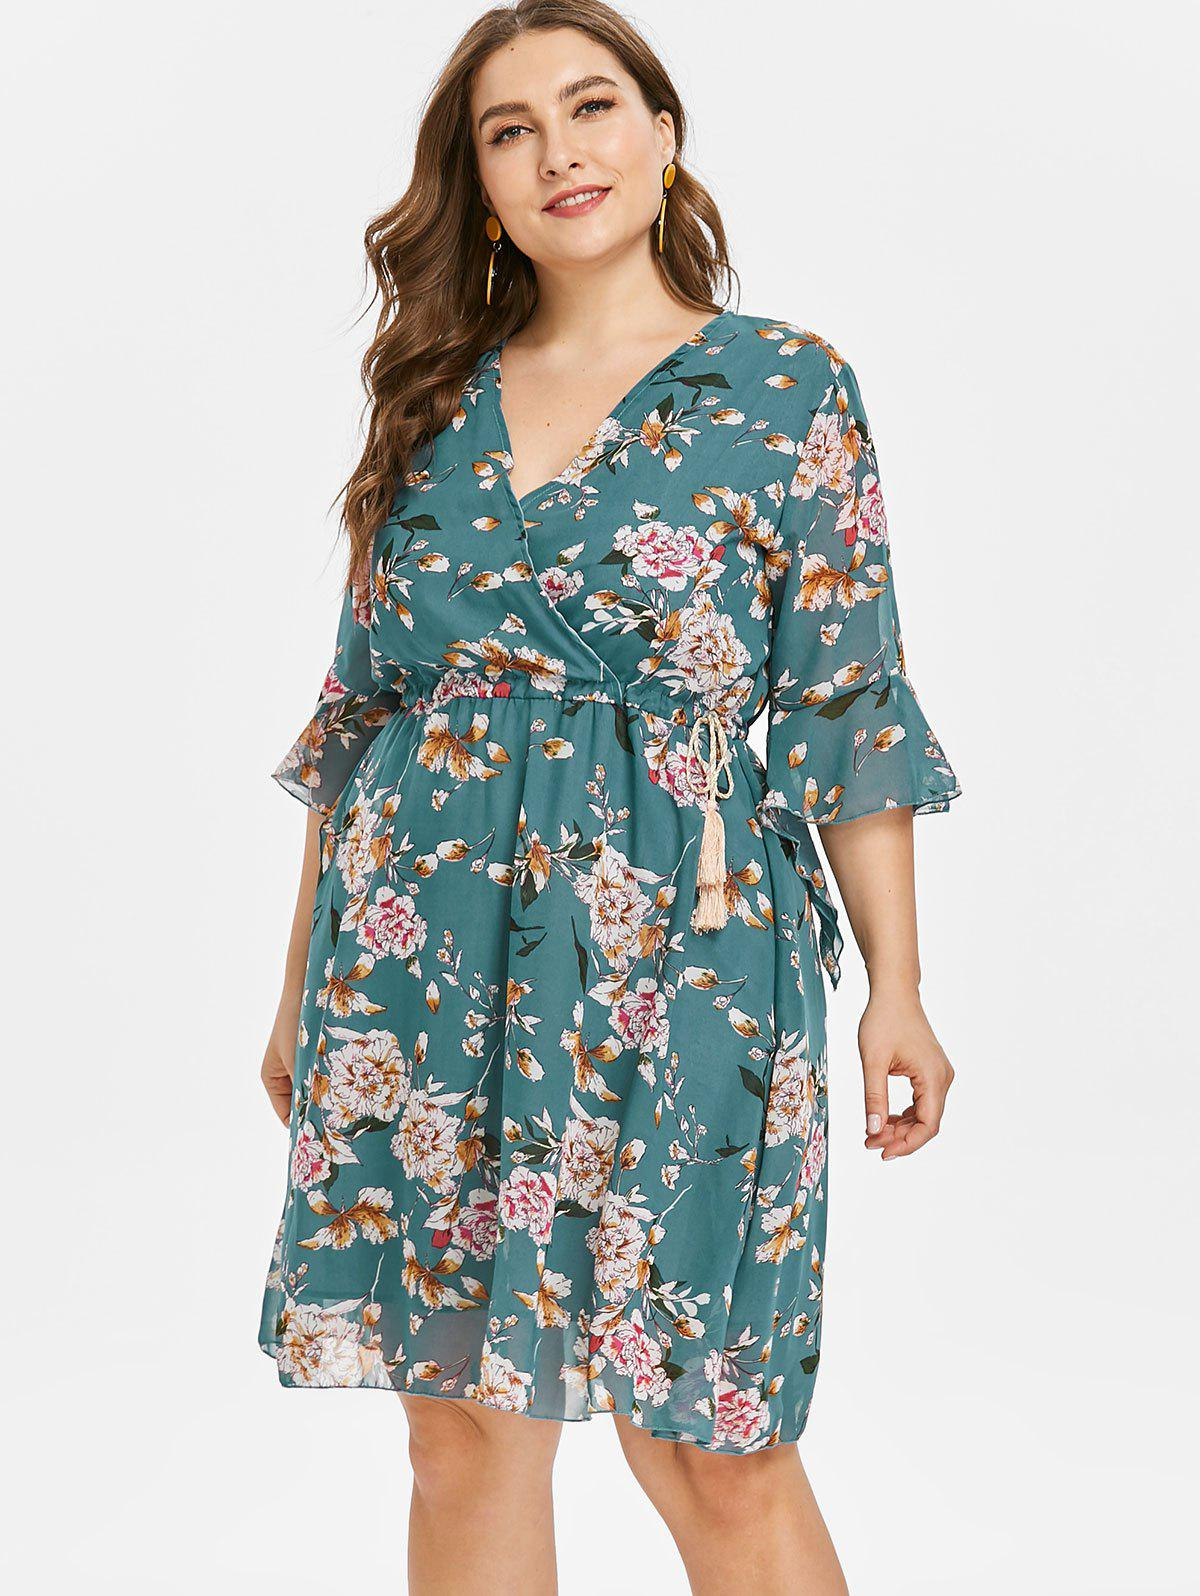 New Floral Plus Size Skater Dress